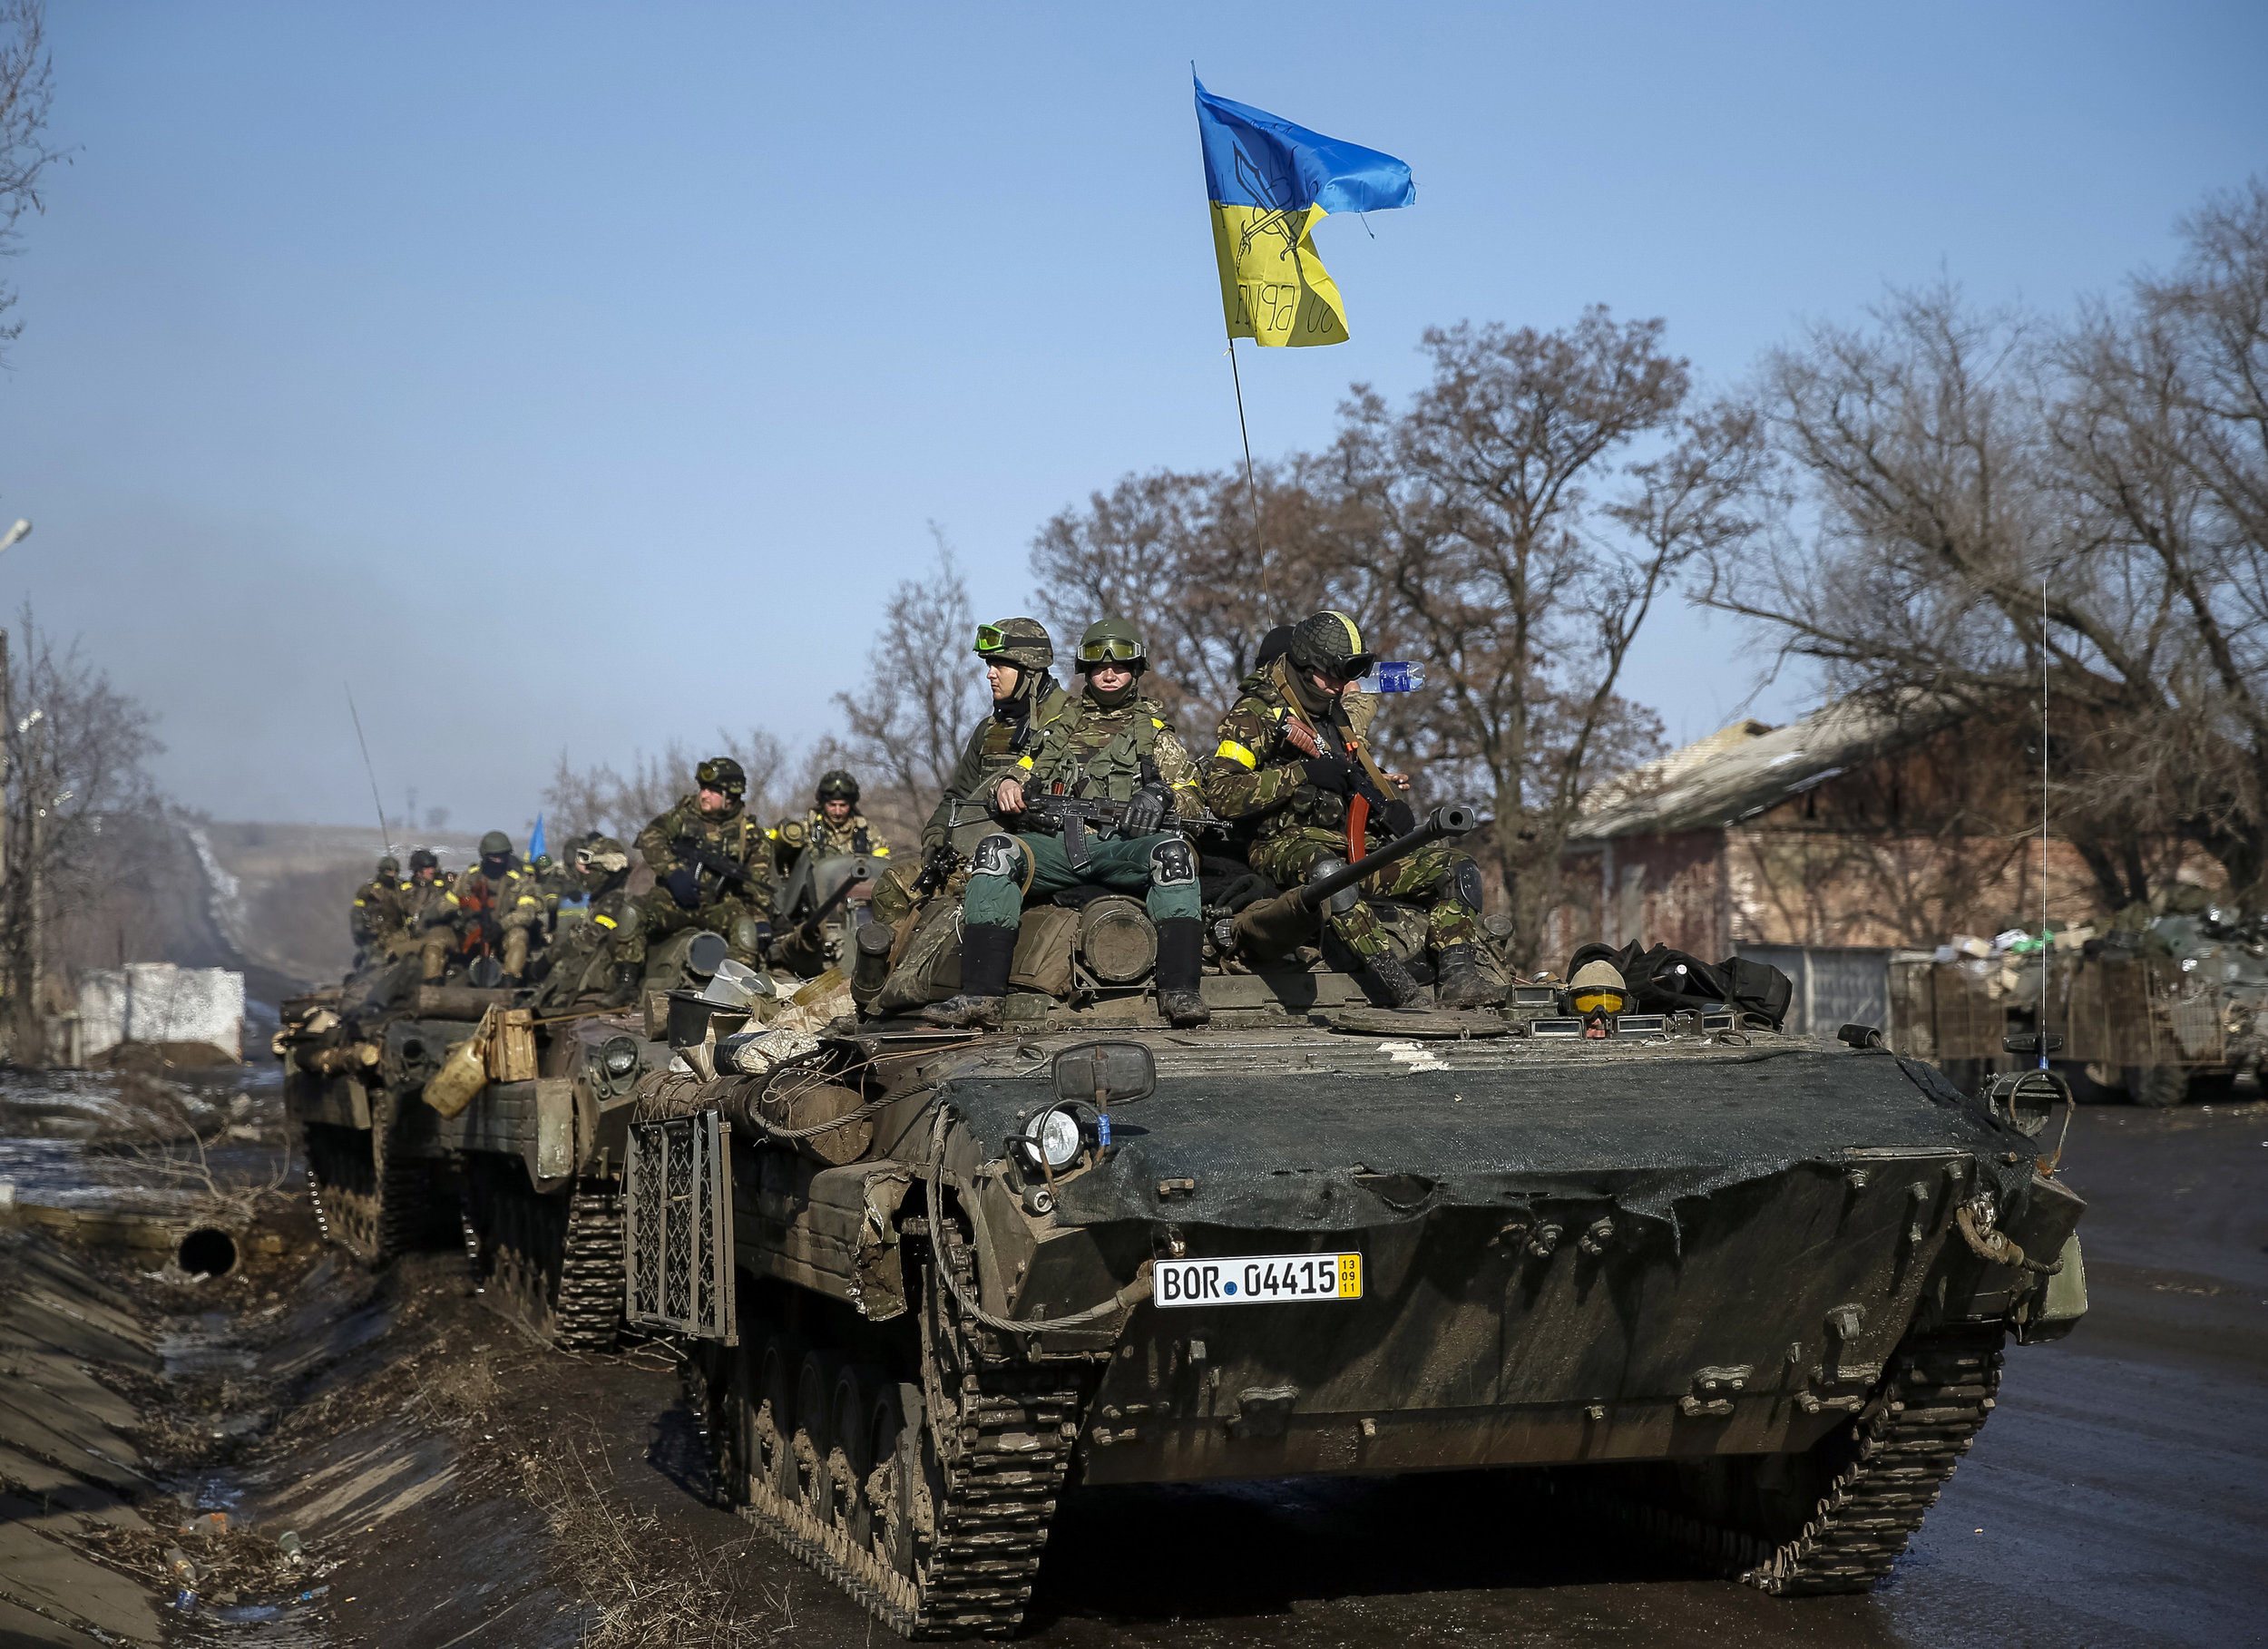 Russian advances in Donbas forced Ukraine to make concessions in the truce agreed February 12, 2015. (Gleb Garanich/Reuters)